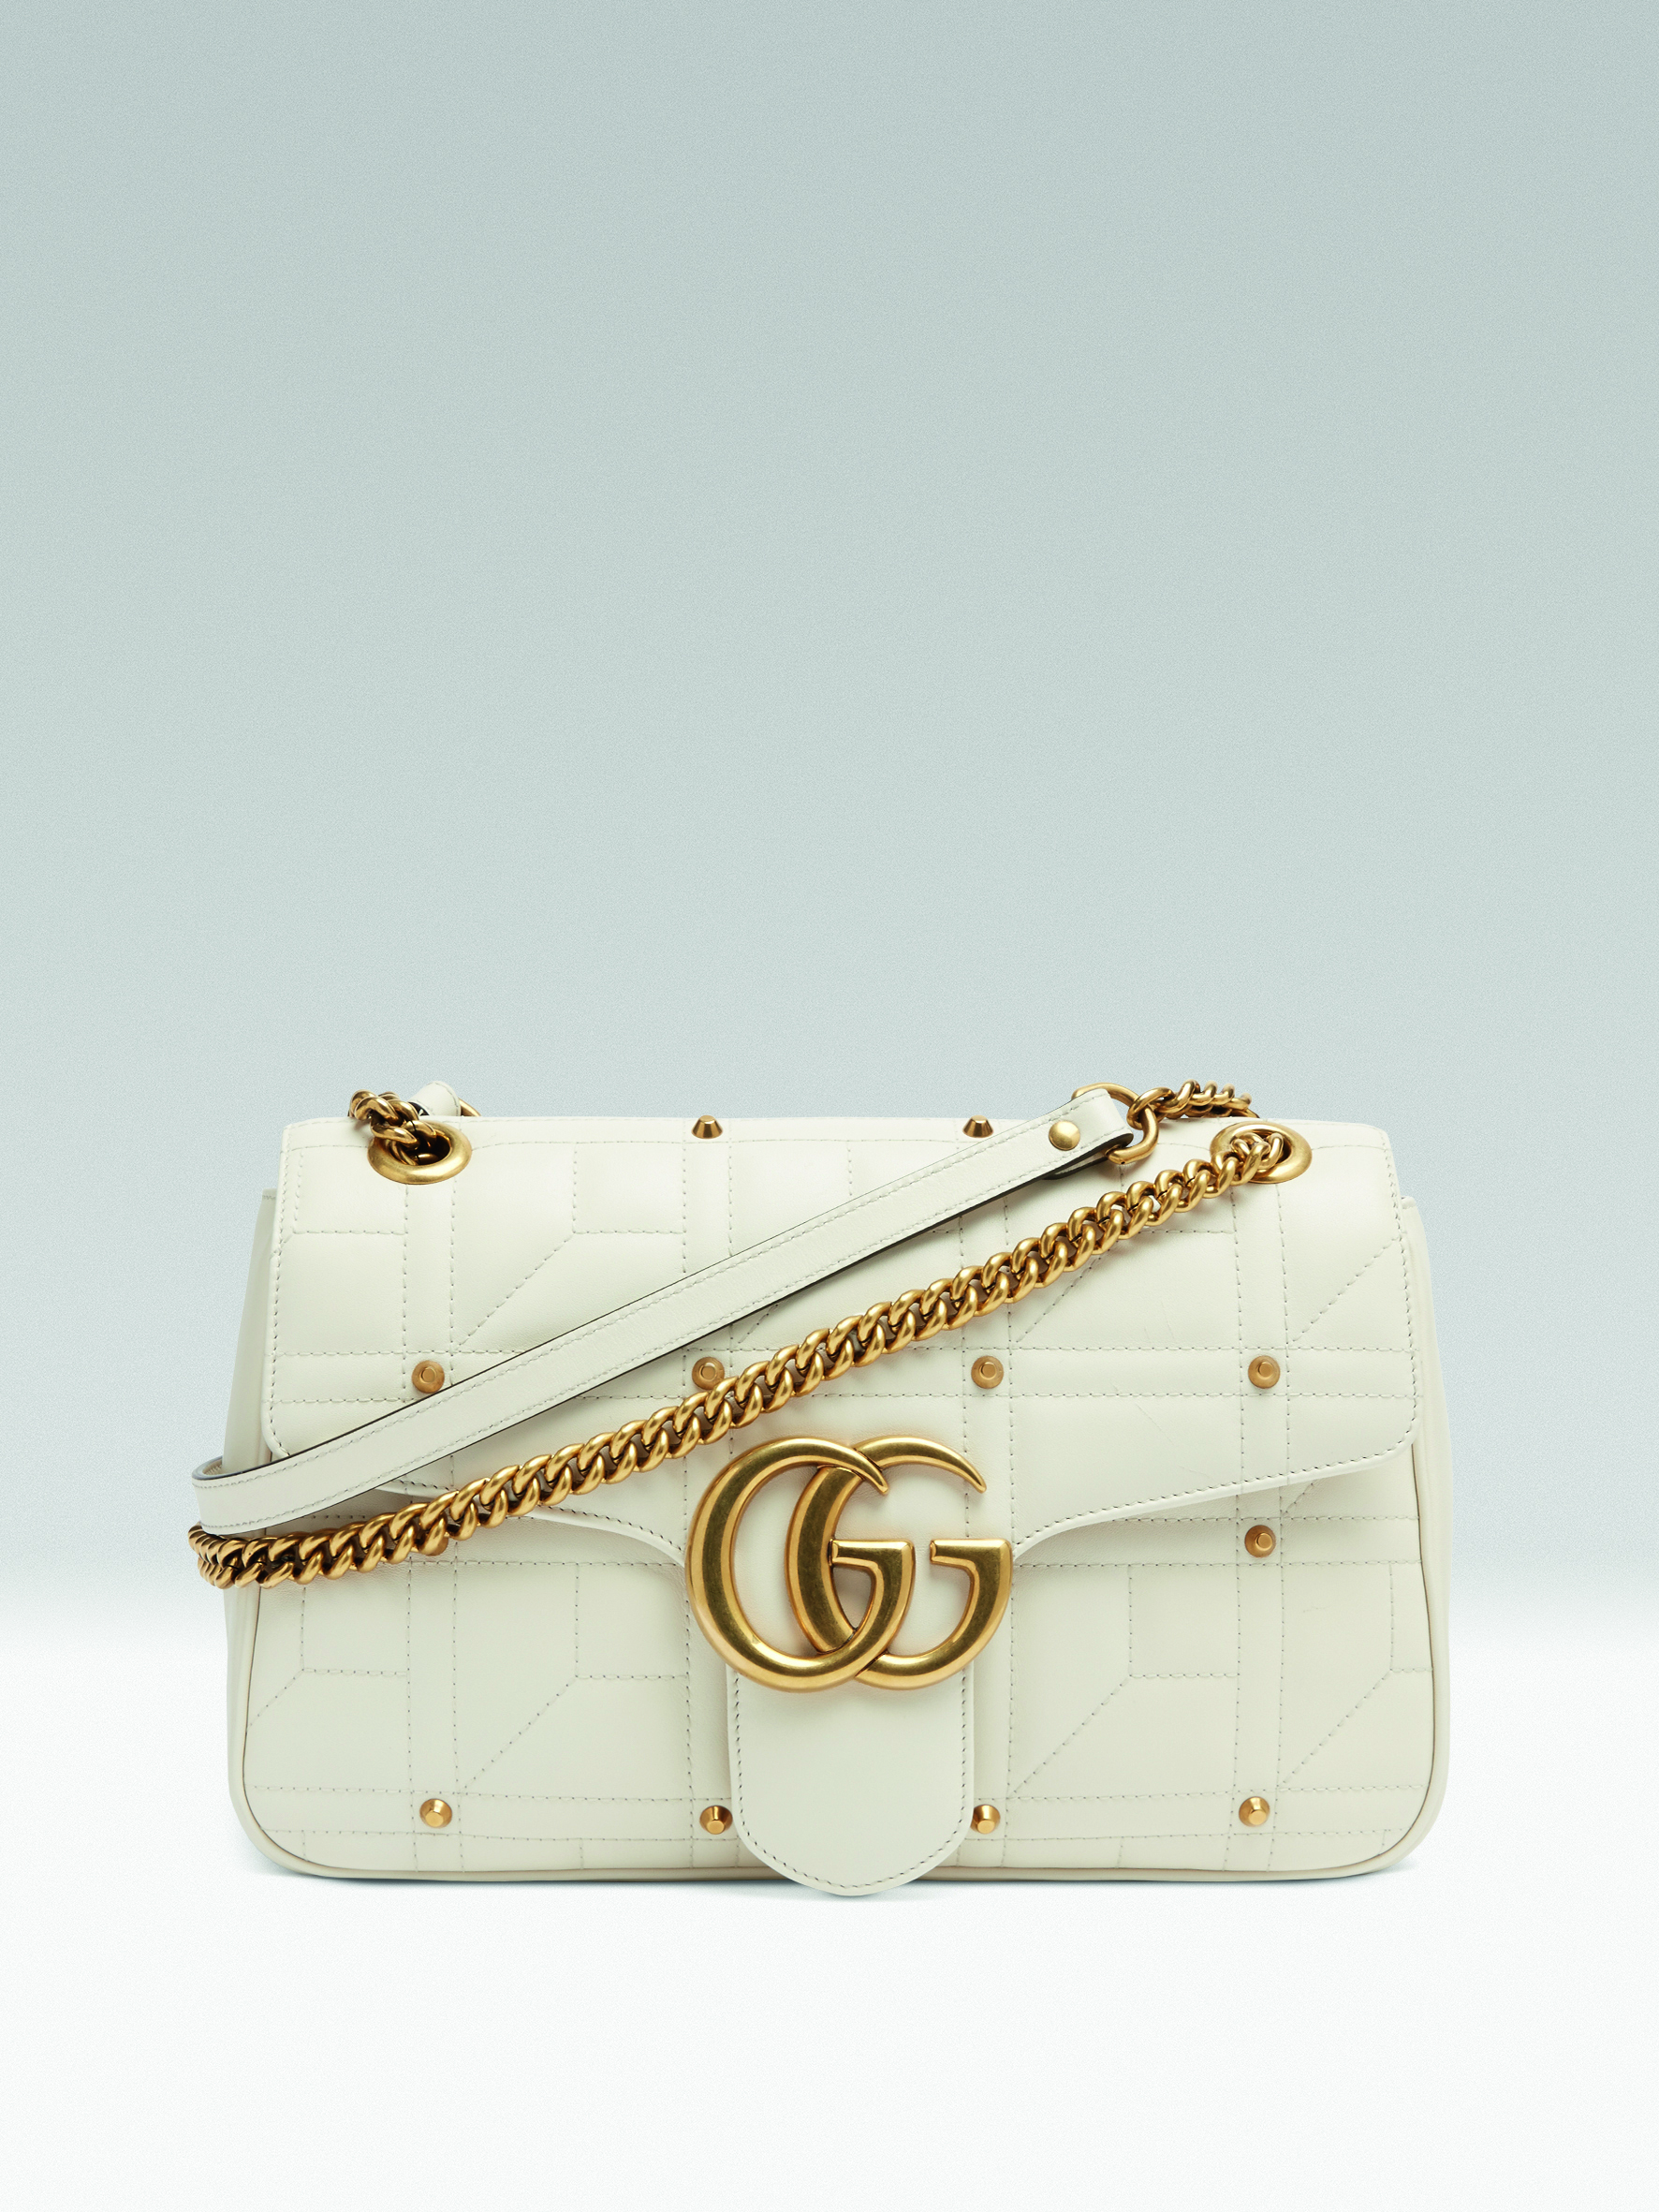 bab61ffc5 Spotted on celebrities the likes of Sienna Miller and Chiara Ferragni, it  is no doubt that the GG Marmont bags have received the stamp of approval in  the ...